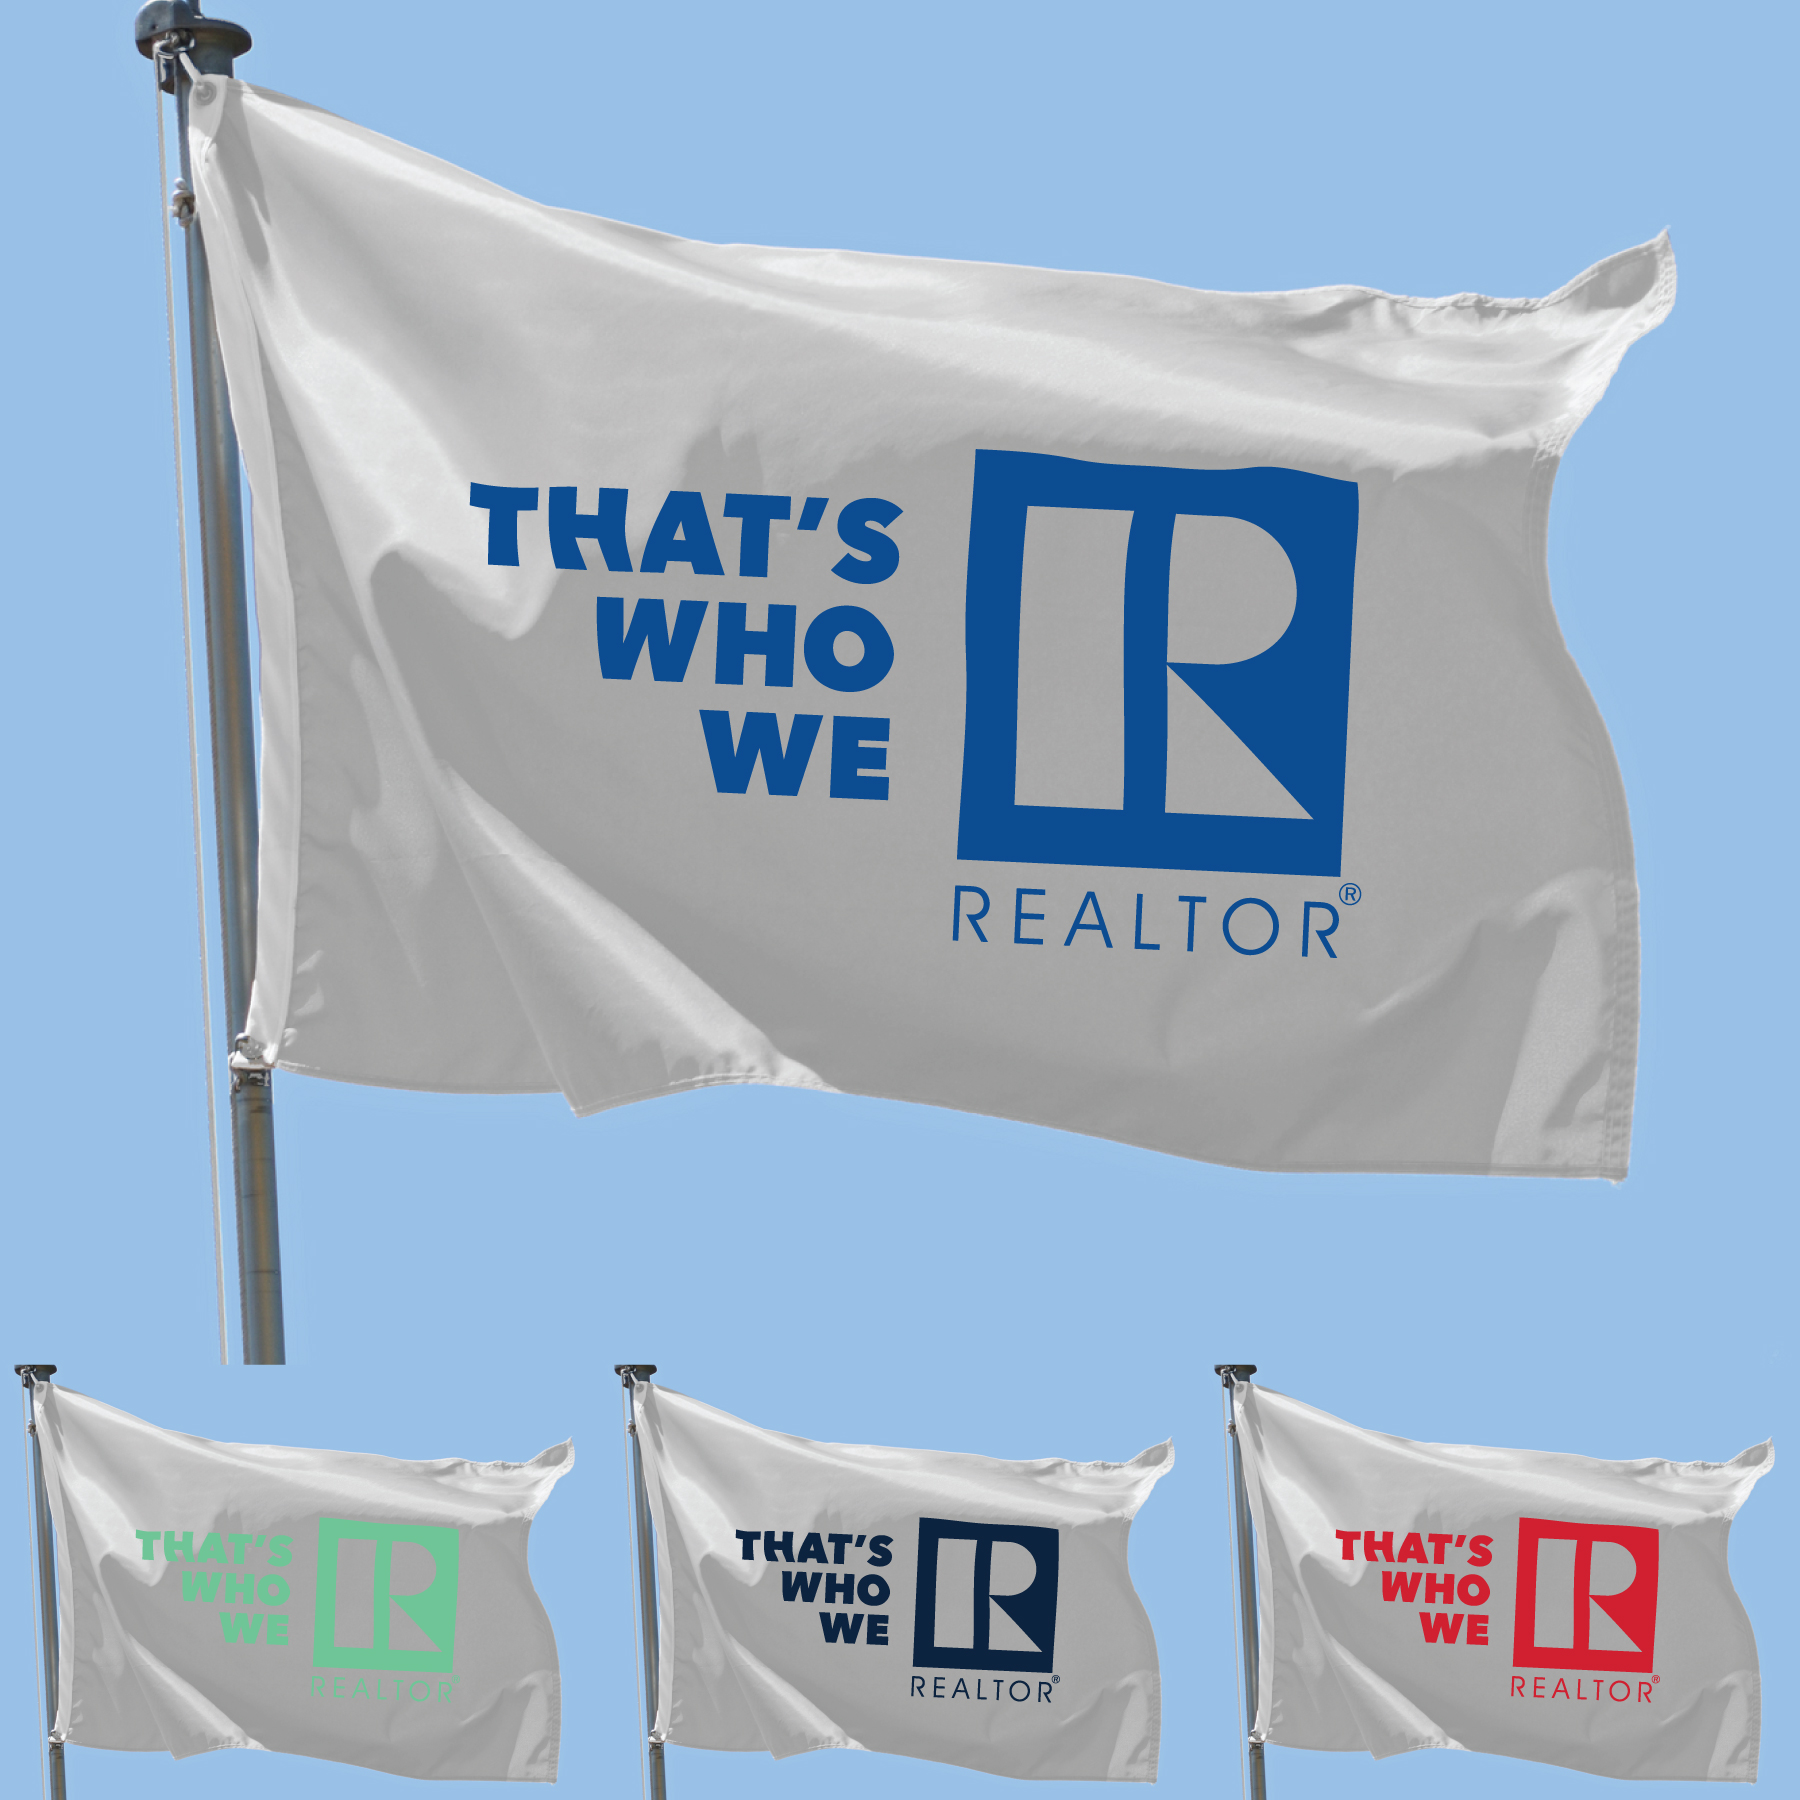 """That's Who We R"" Nylon Flag twwr,ThatsWhoWeR,That's,TWWR,ThatWho,That'sWho,Twwr,Thats,Whos,We,Ares,Flags,Realtors,Partys,banners,poles,signs,Twwr"